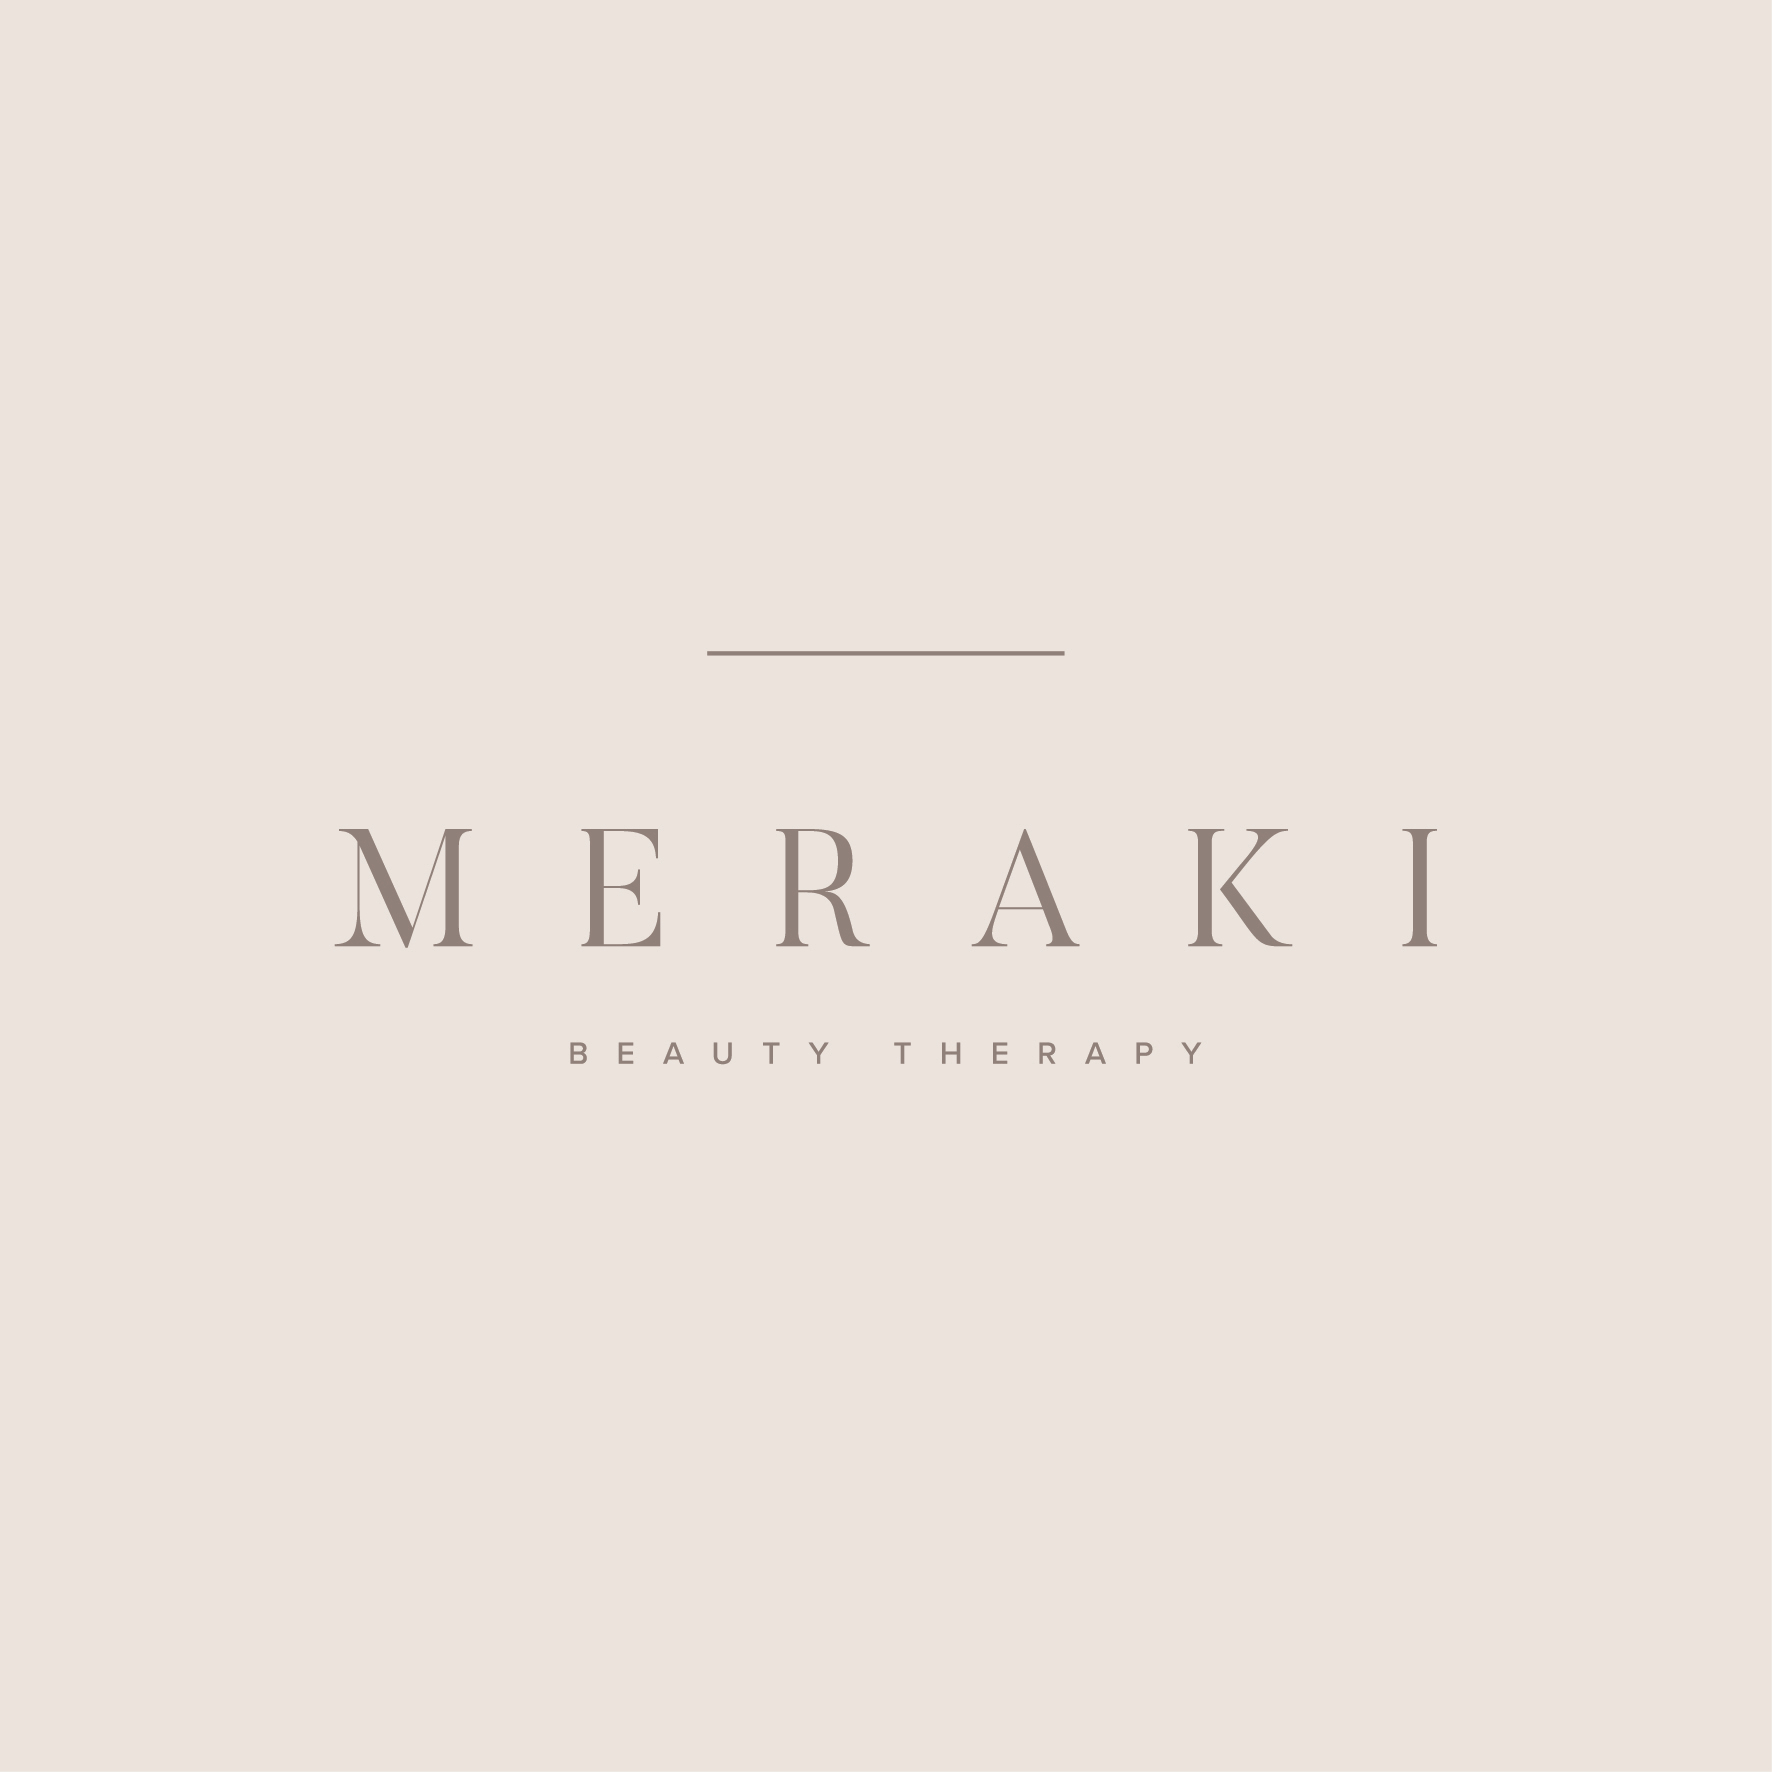 Meraki Beauty Therapy